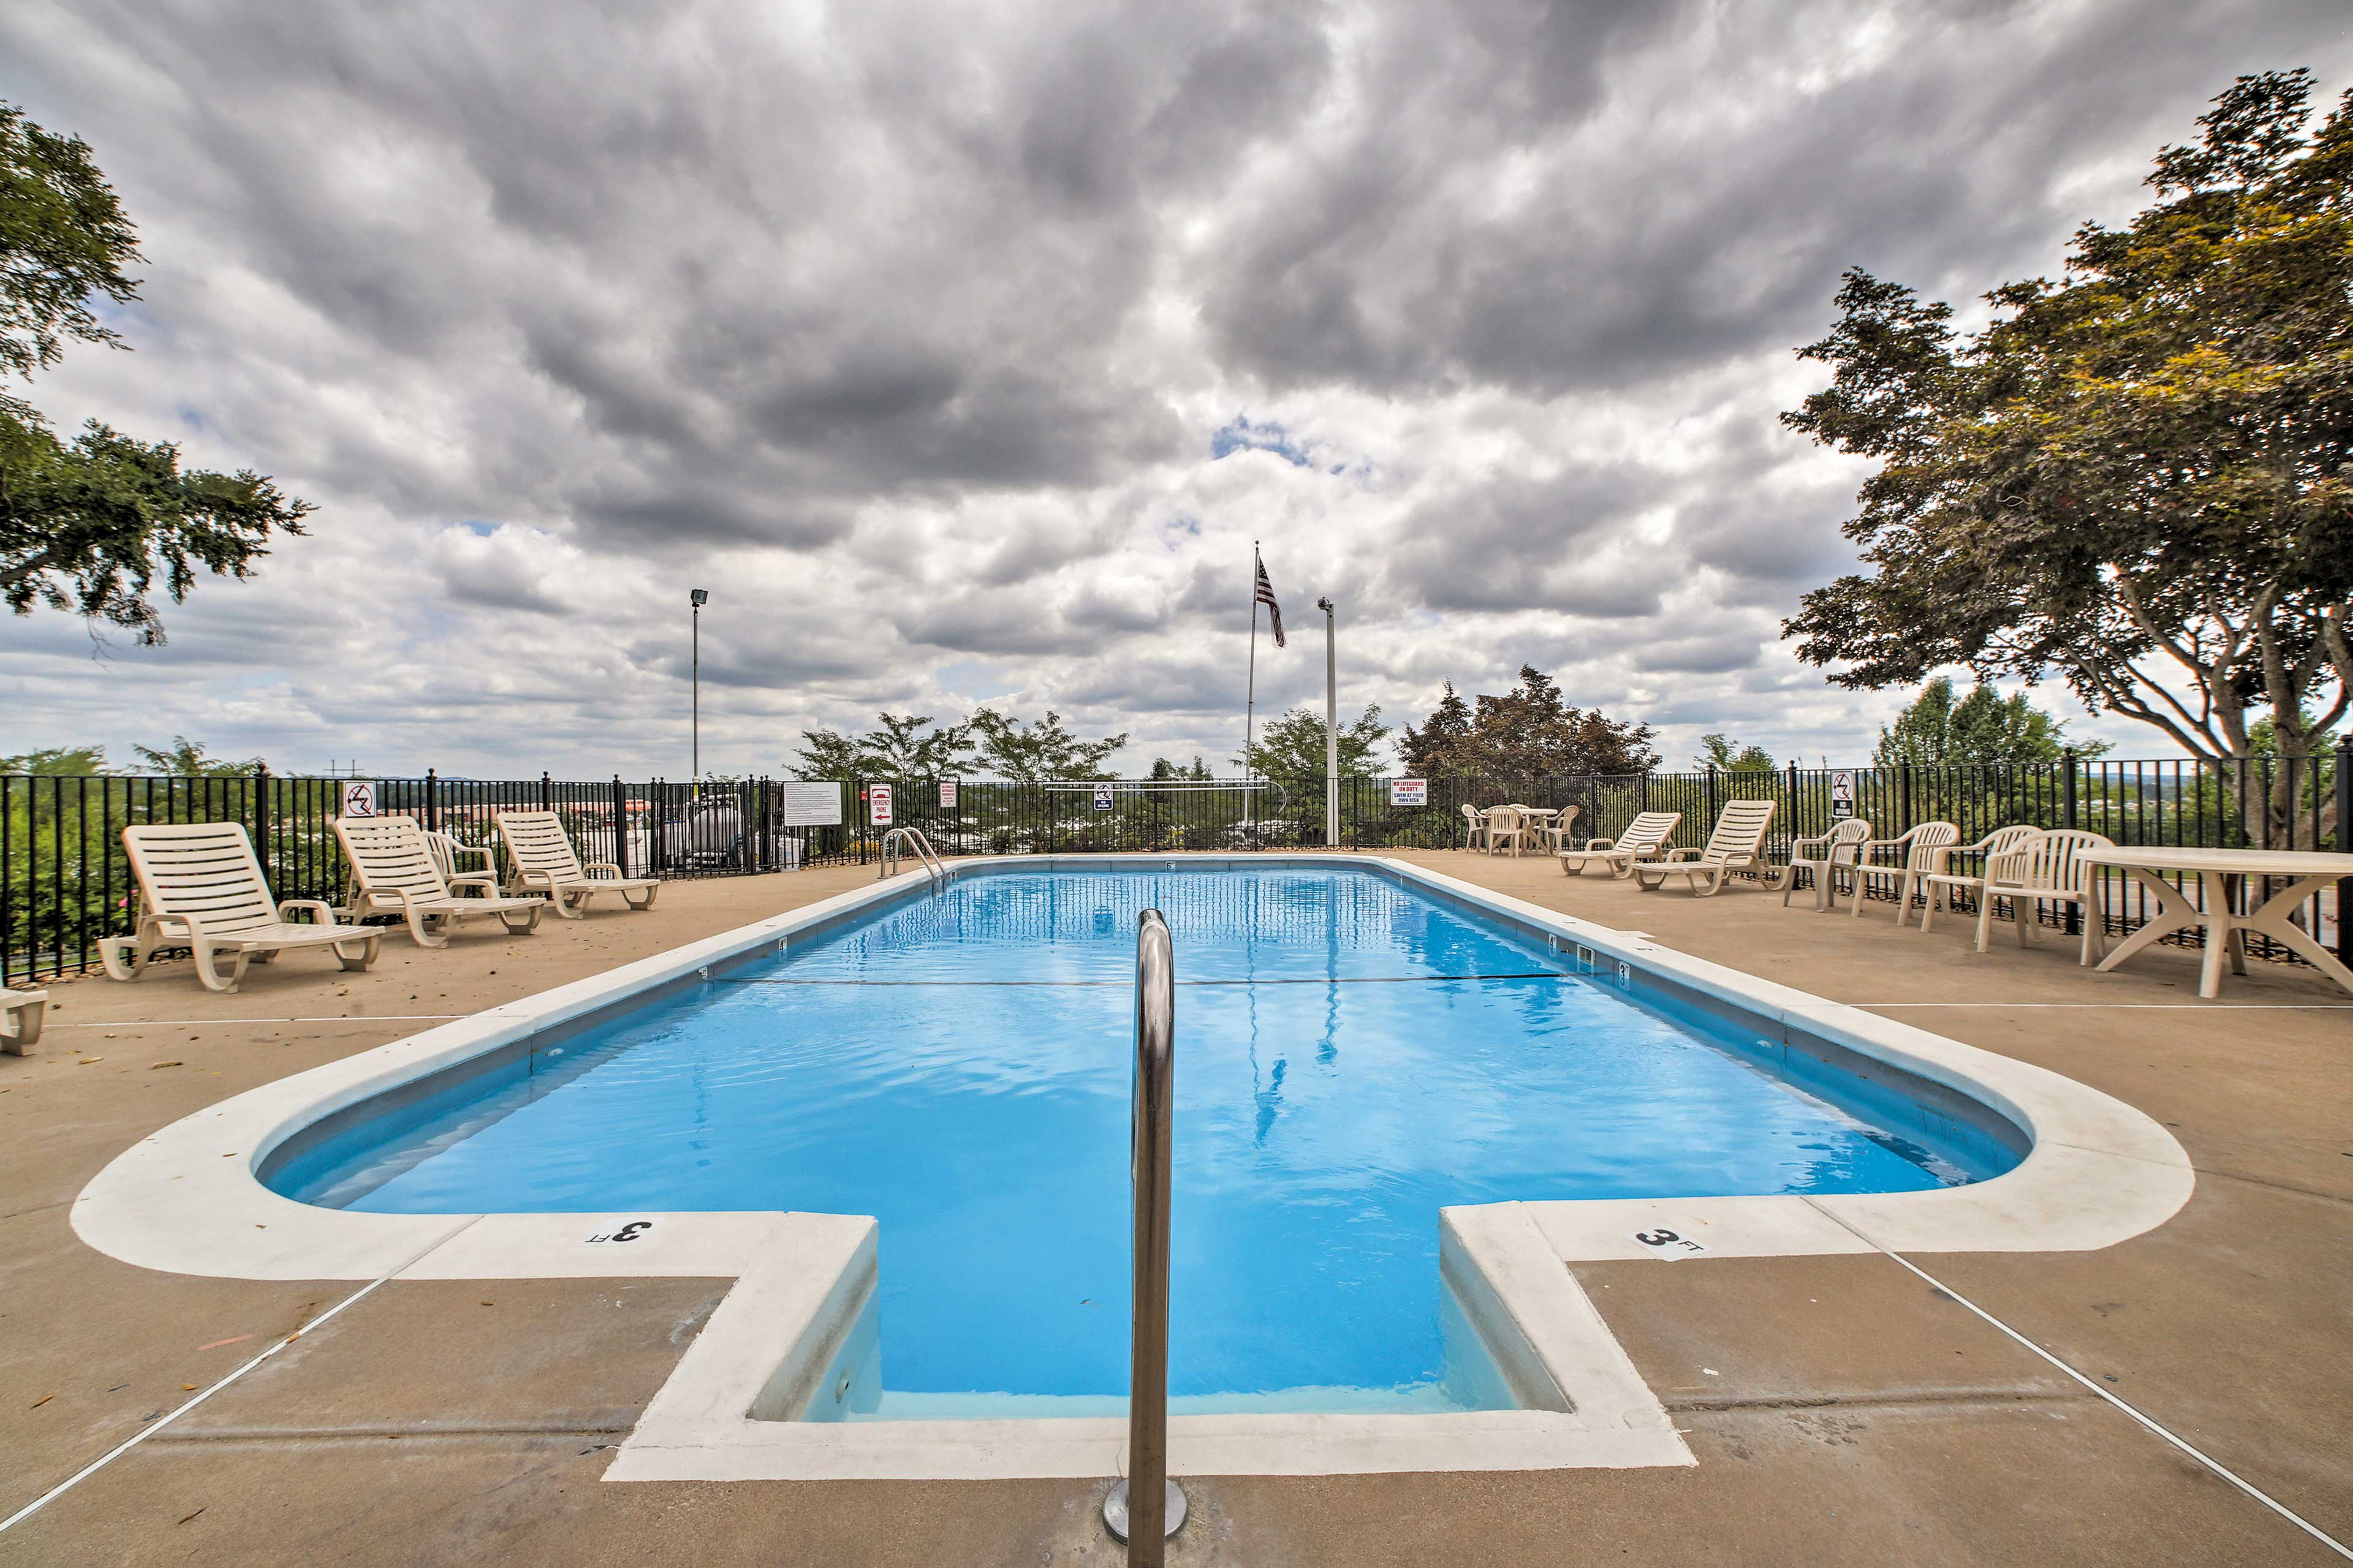 This community pool is the perfect place to spend your warm summer days.